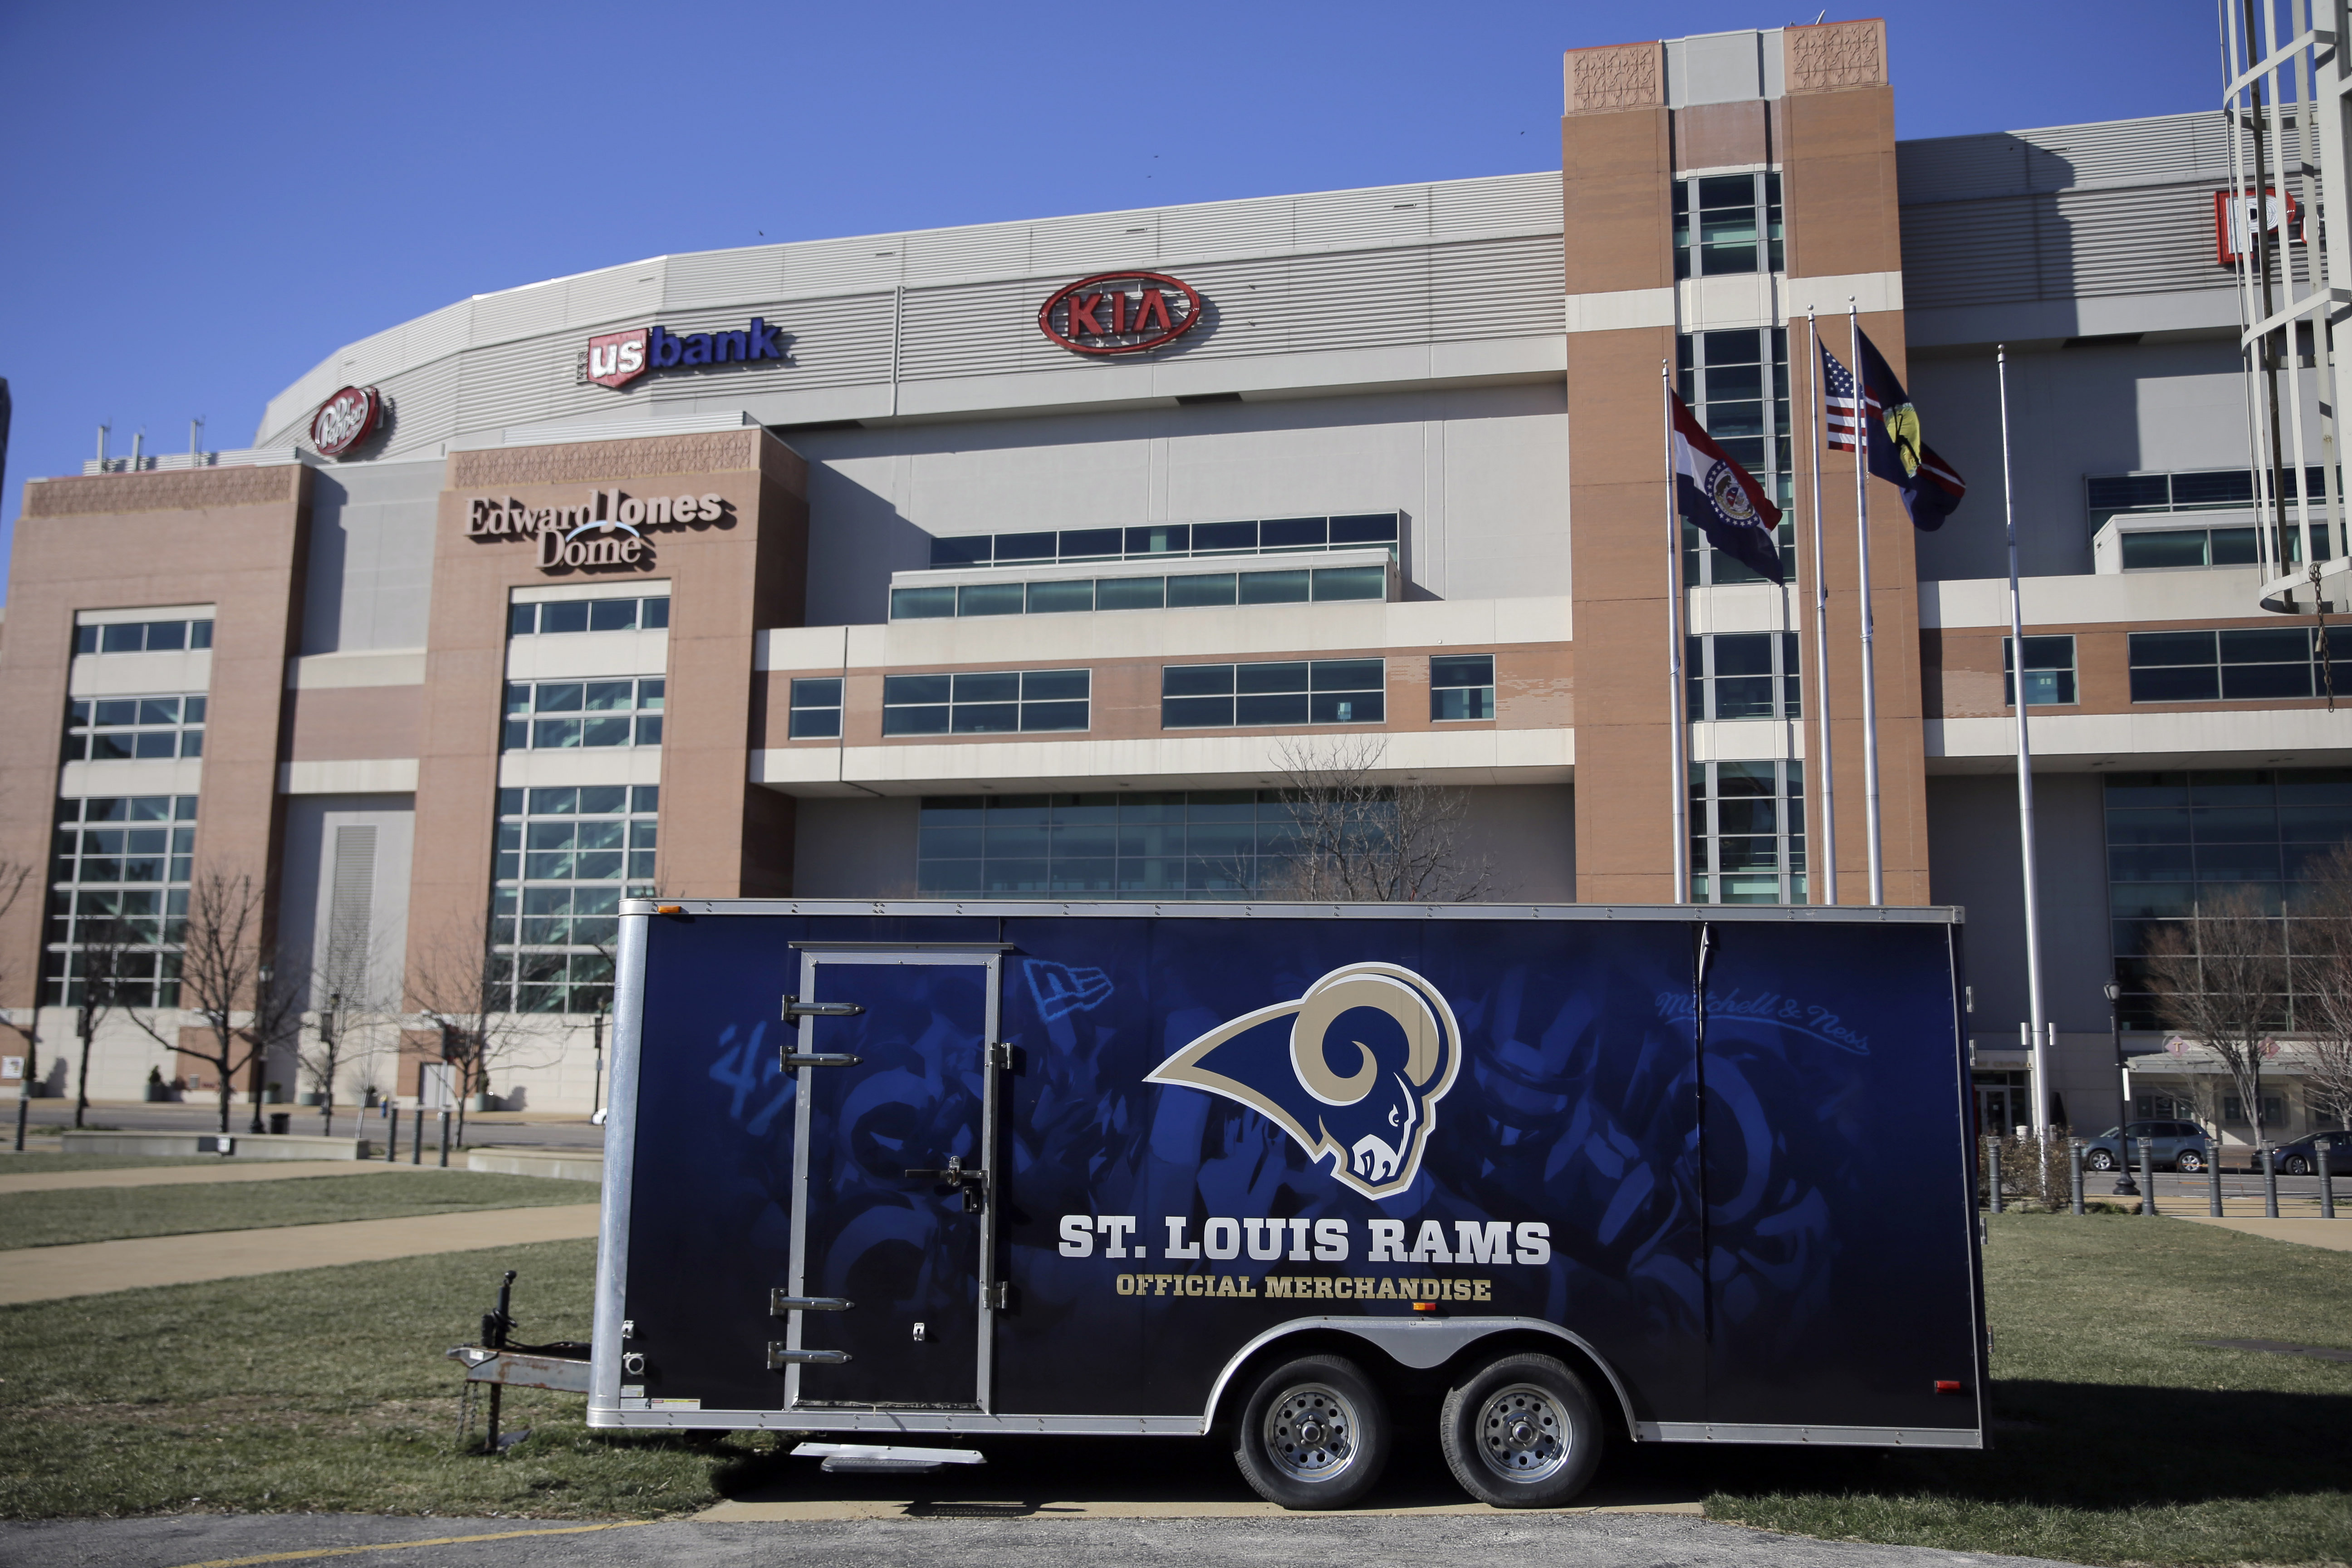 File-This Jan. 13, 2016, file photo shows a merchandise trailer sitting outside the Edward Jones Dome, former home of the St. Louis Rams, in St. Louis. For weeks now, a steady succession of moving vans has been hauling away whatever the Los Angeles Rams w